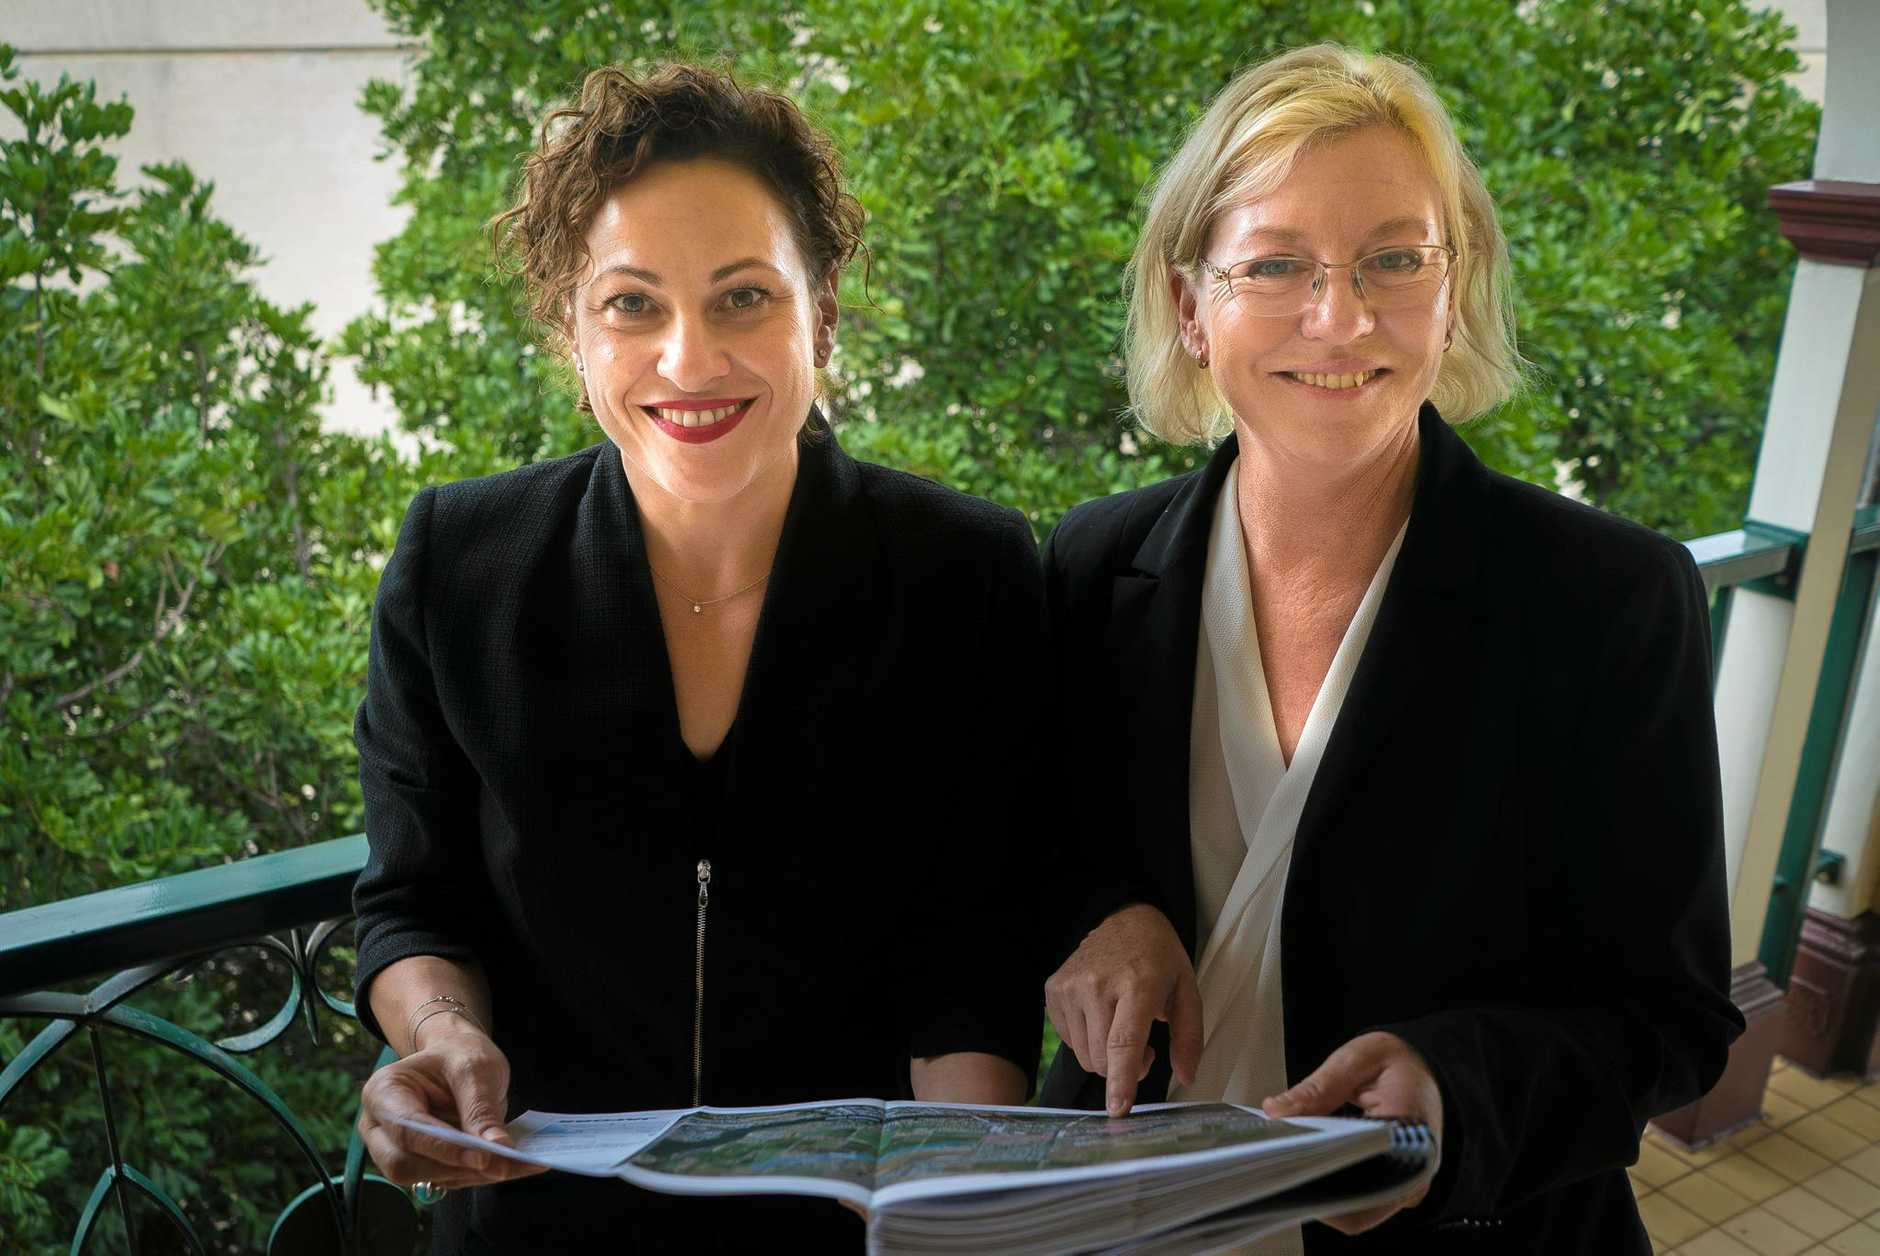 SHORTLIST: Deputy Premier Jackie Trad and Member for Bundaberg Leanne Donaldson with the technical reports for the Bundaberg Flood Protection Study.